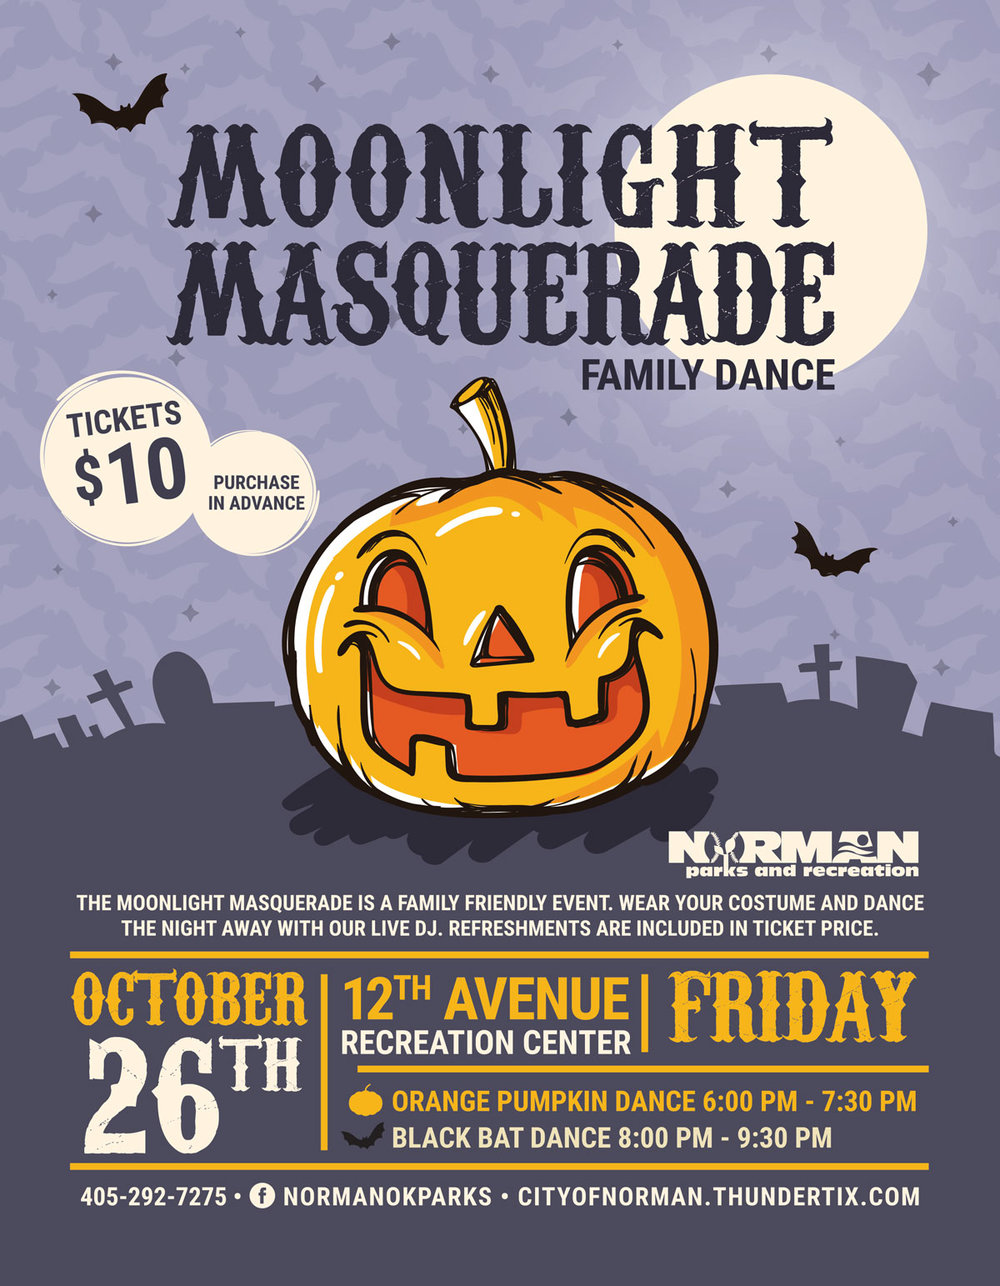 CON_MoonlightMasquerade_Flyer.jpg